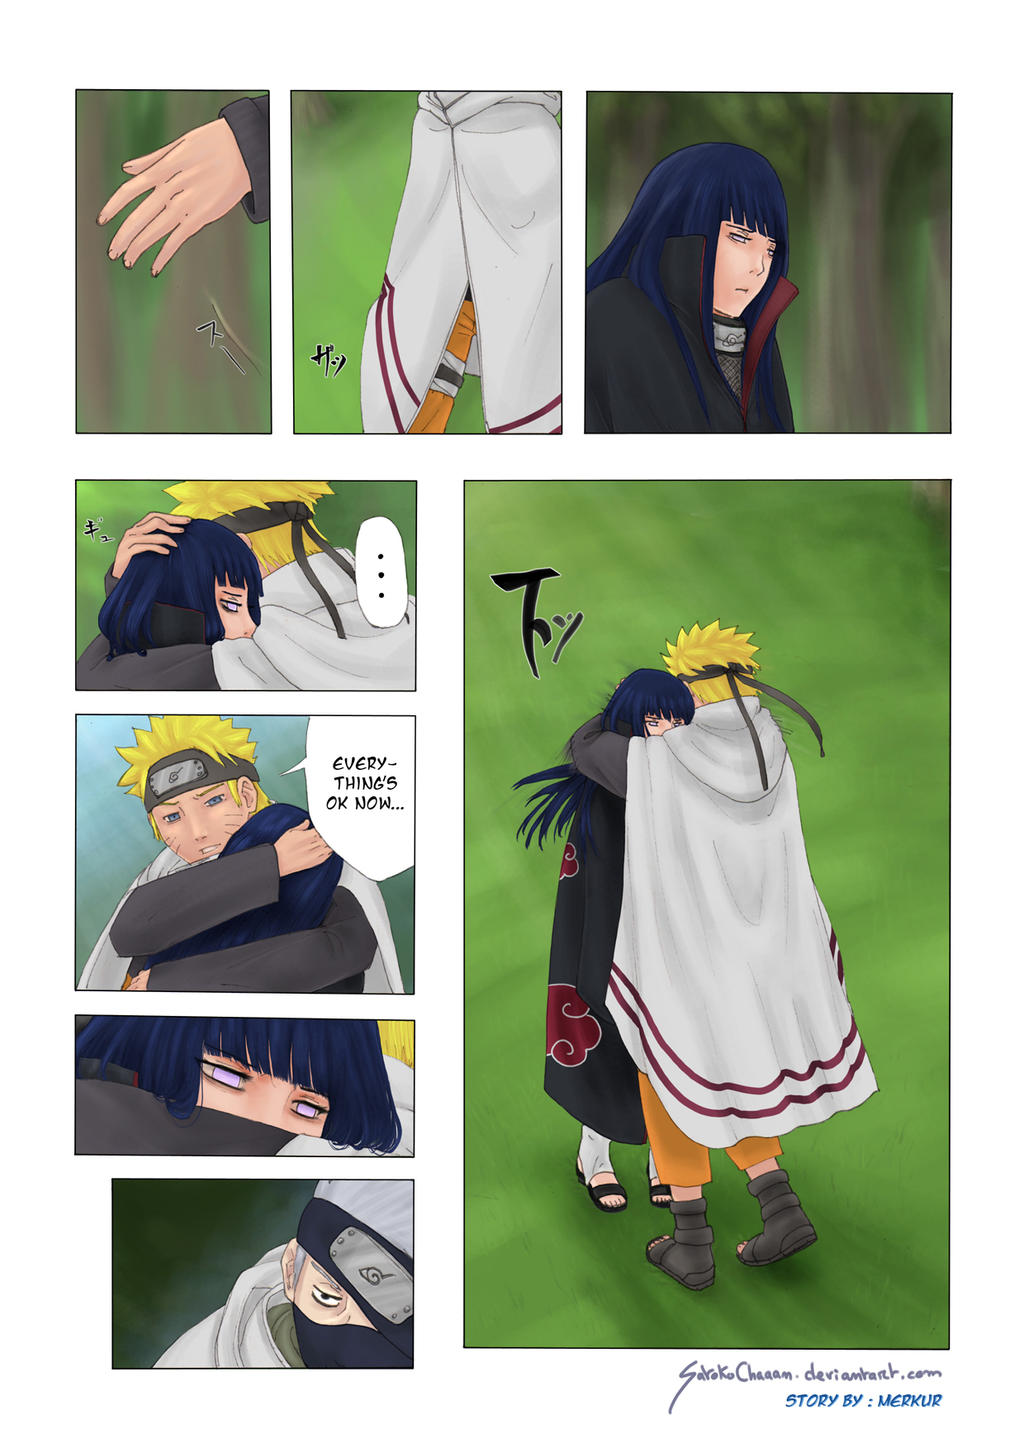 Hinata Akatsuki Fanfiction Return in akatsuki -teaser- p2